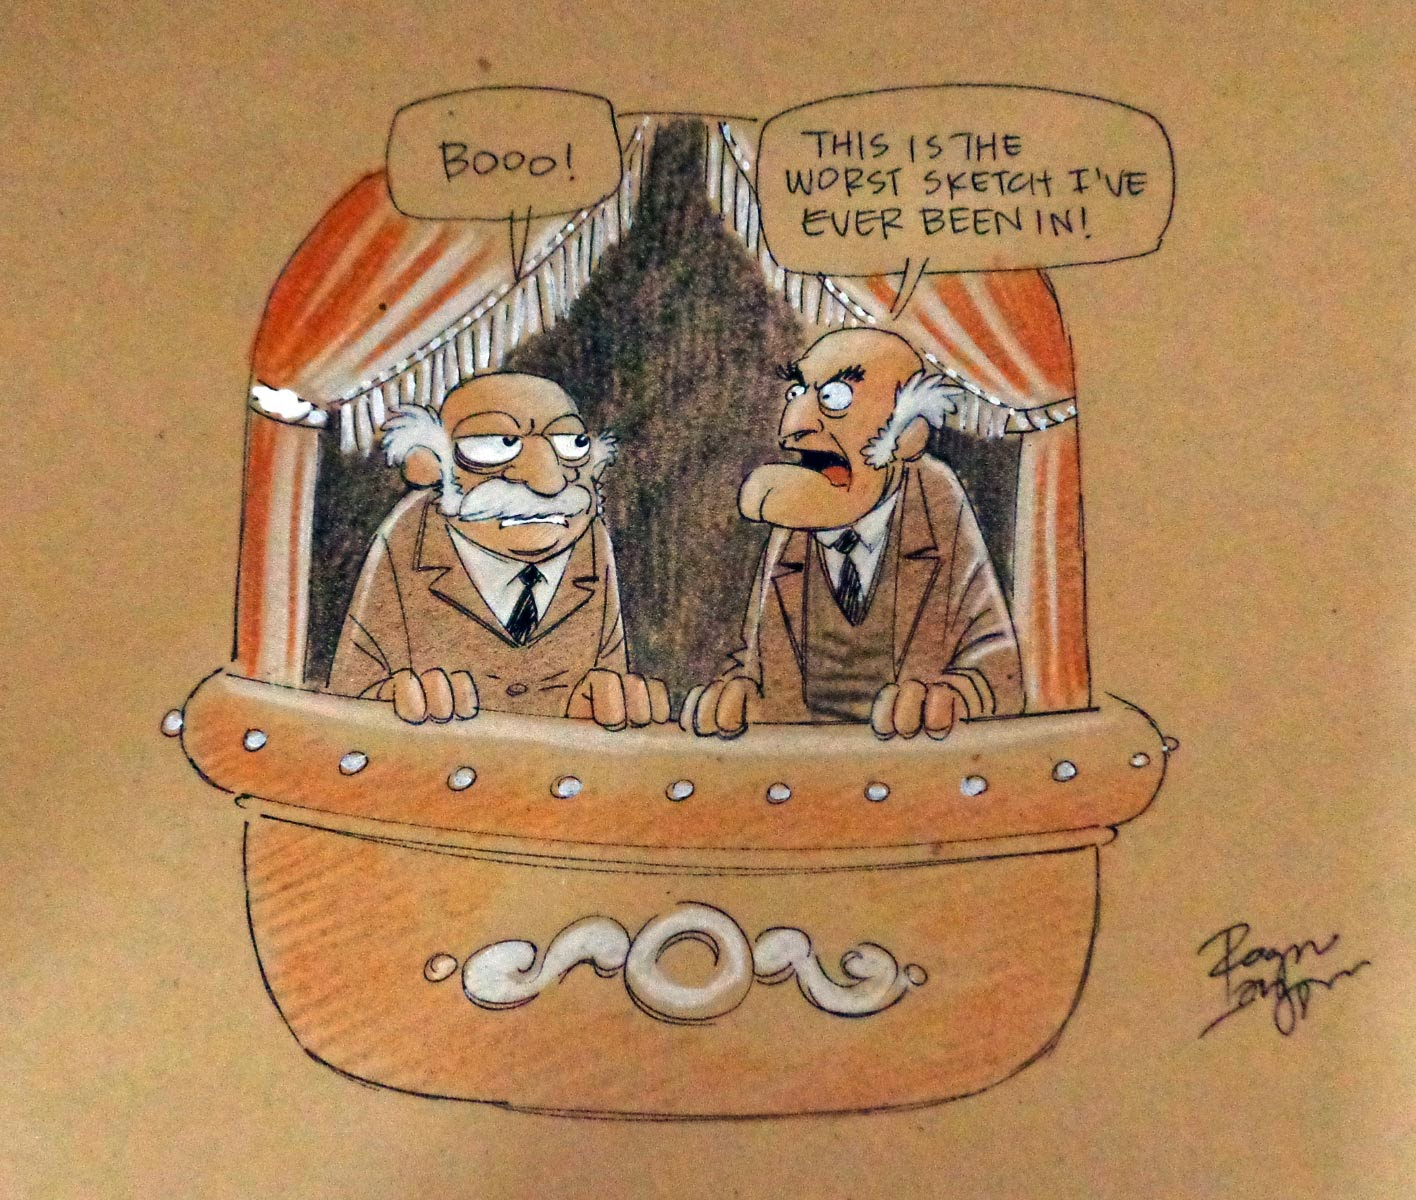 1000 Ideas About Statler And Waldorf On Pinterest: The Hotel Fred: Glasgow Comic Con 2014 Sketch: Statler